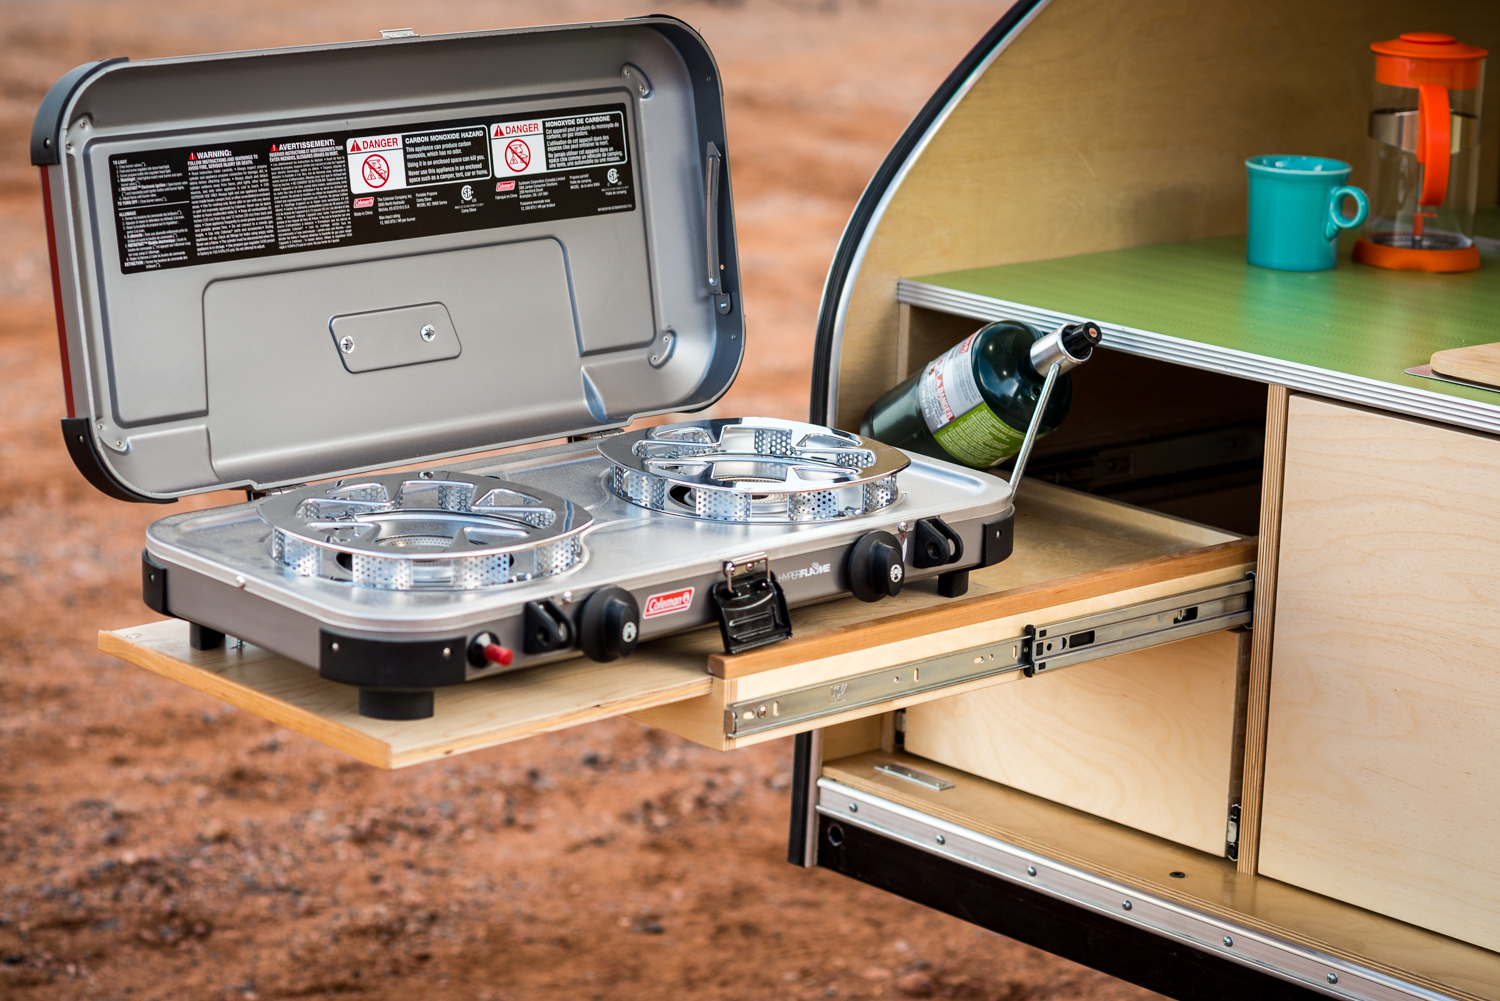 Take your teardrop camping to a new level with an integrated stove for off-grid gourmet.